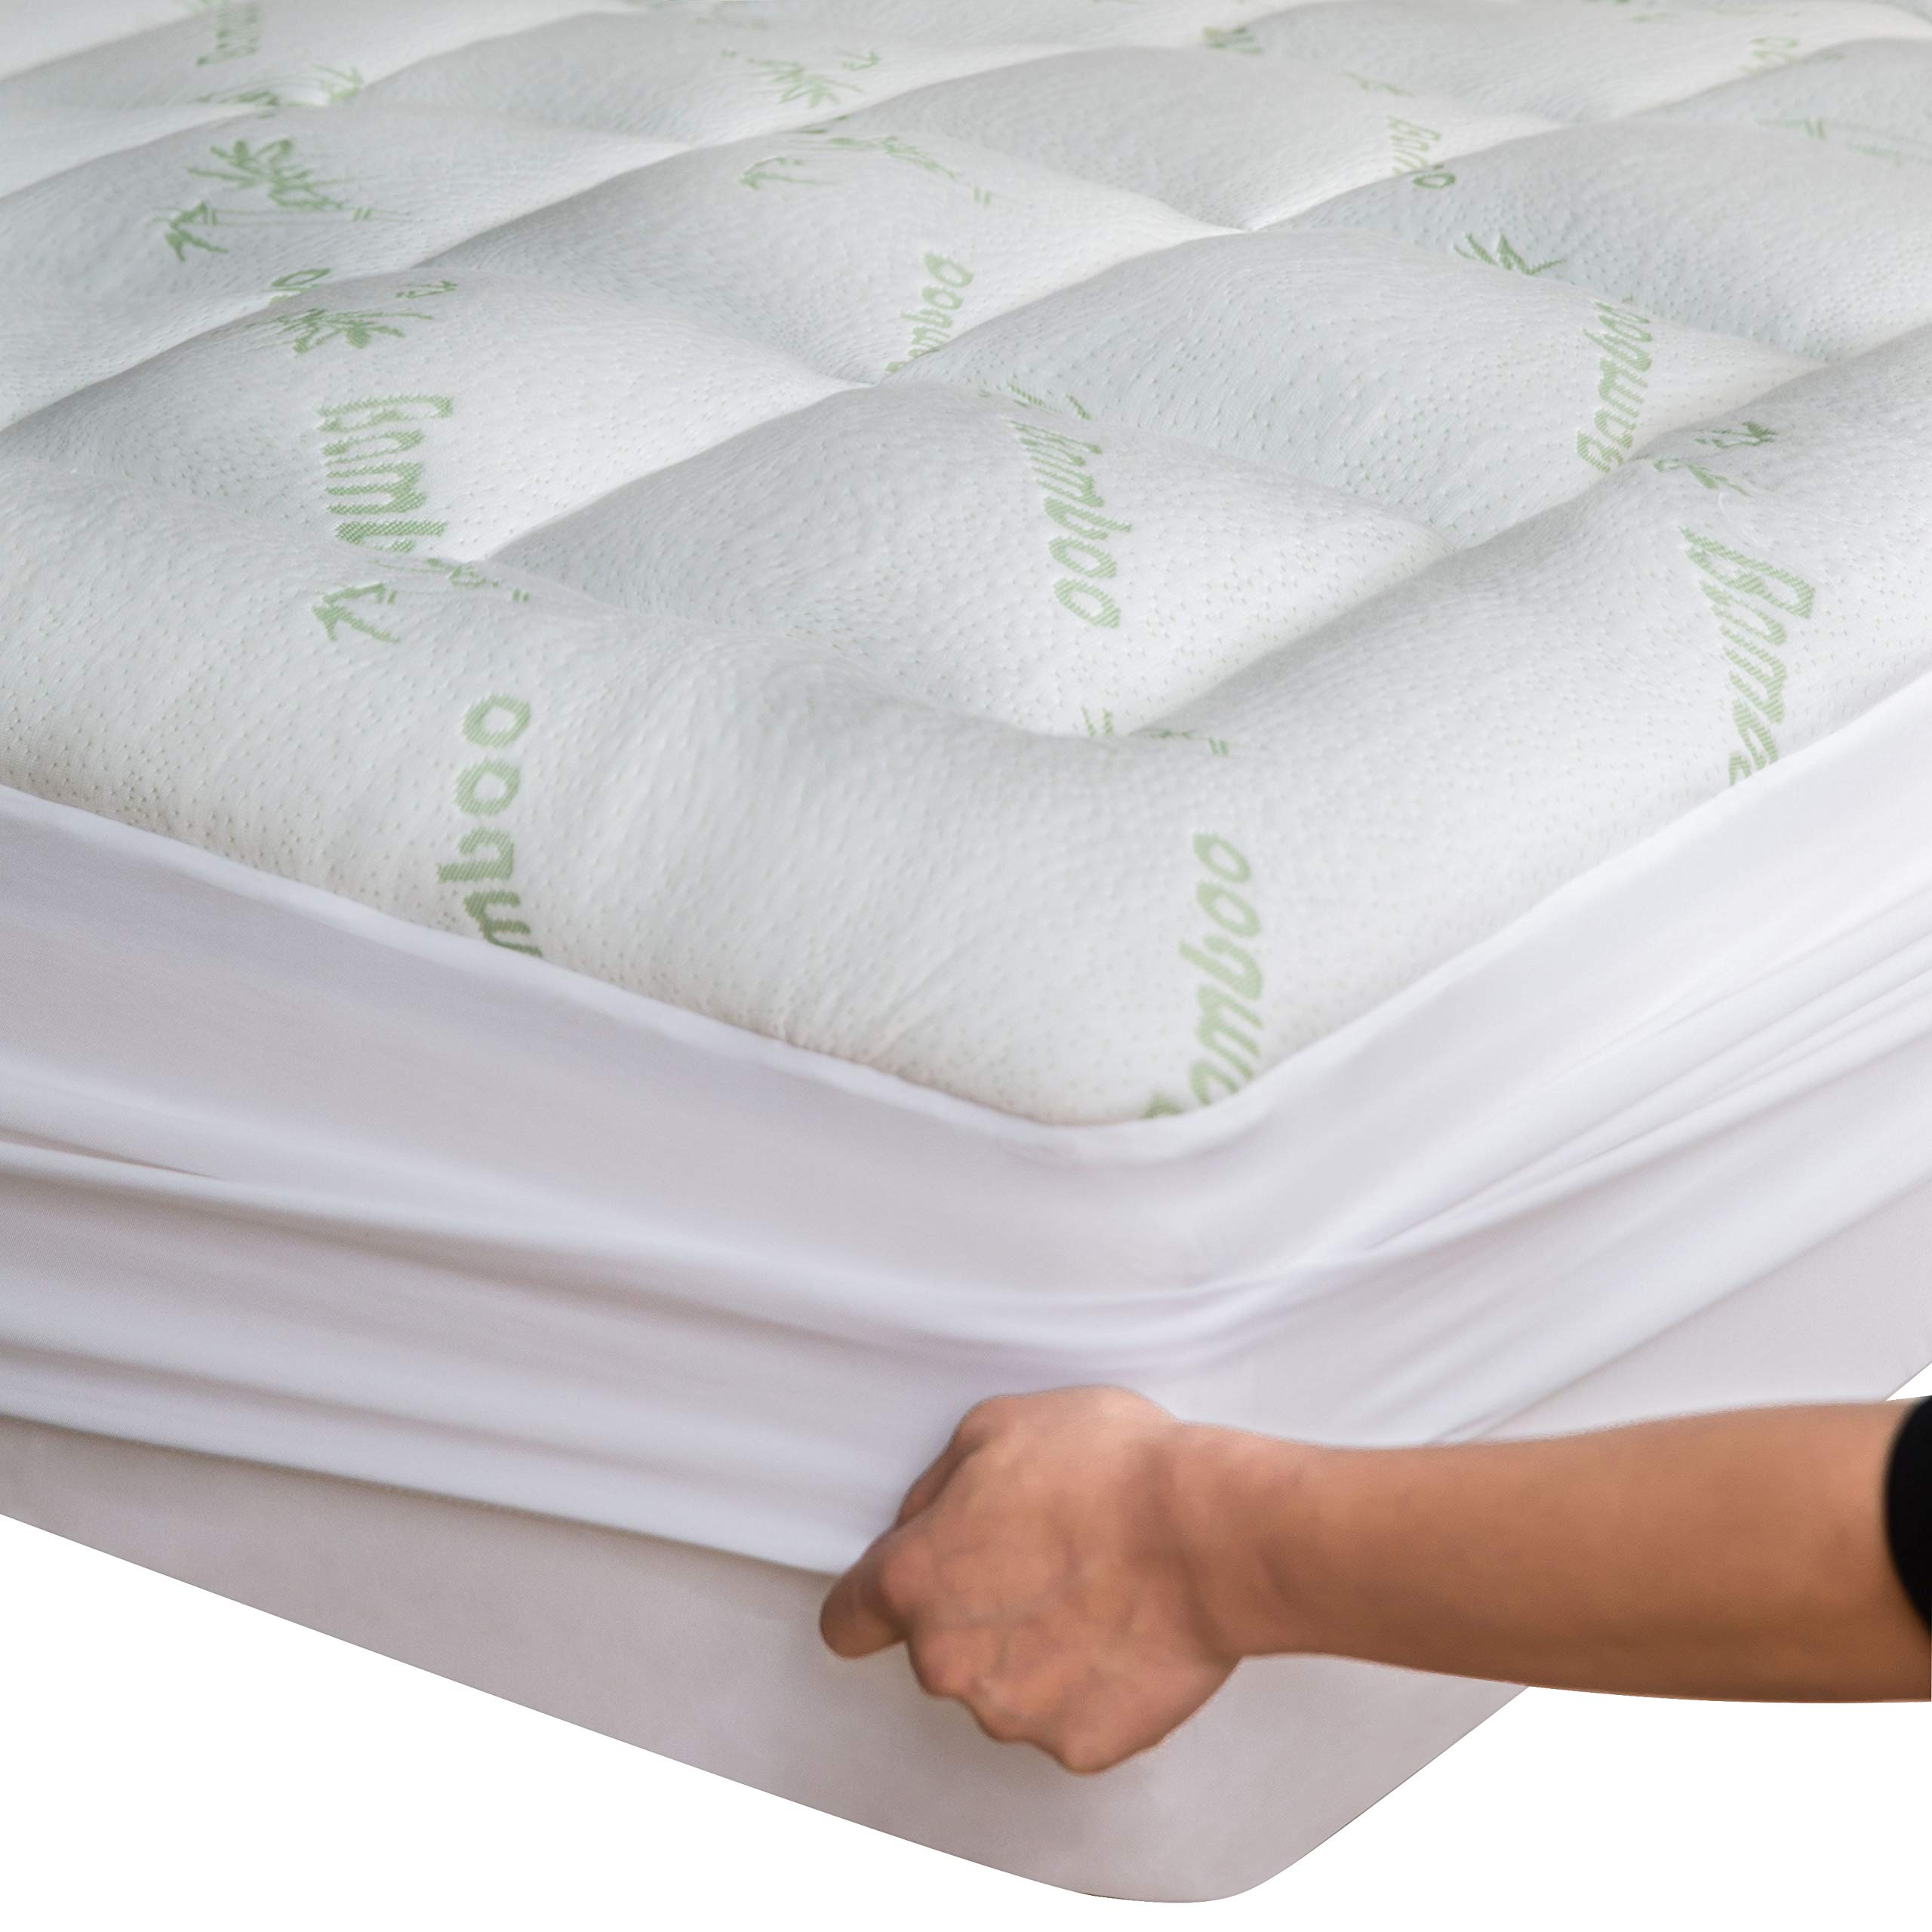 Niagara Sleep Solution Bamboo Mattress Topper Queen with Bonus Pillow Protector Cooling Pillow Top Mattress Pad Breathable Extra Plush Thick Fitted 8-21Inches Rayon Cooling Fabric Ultra Soft